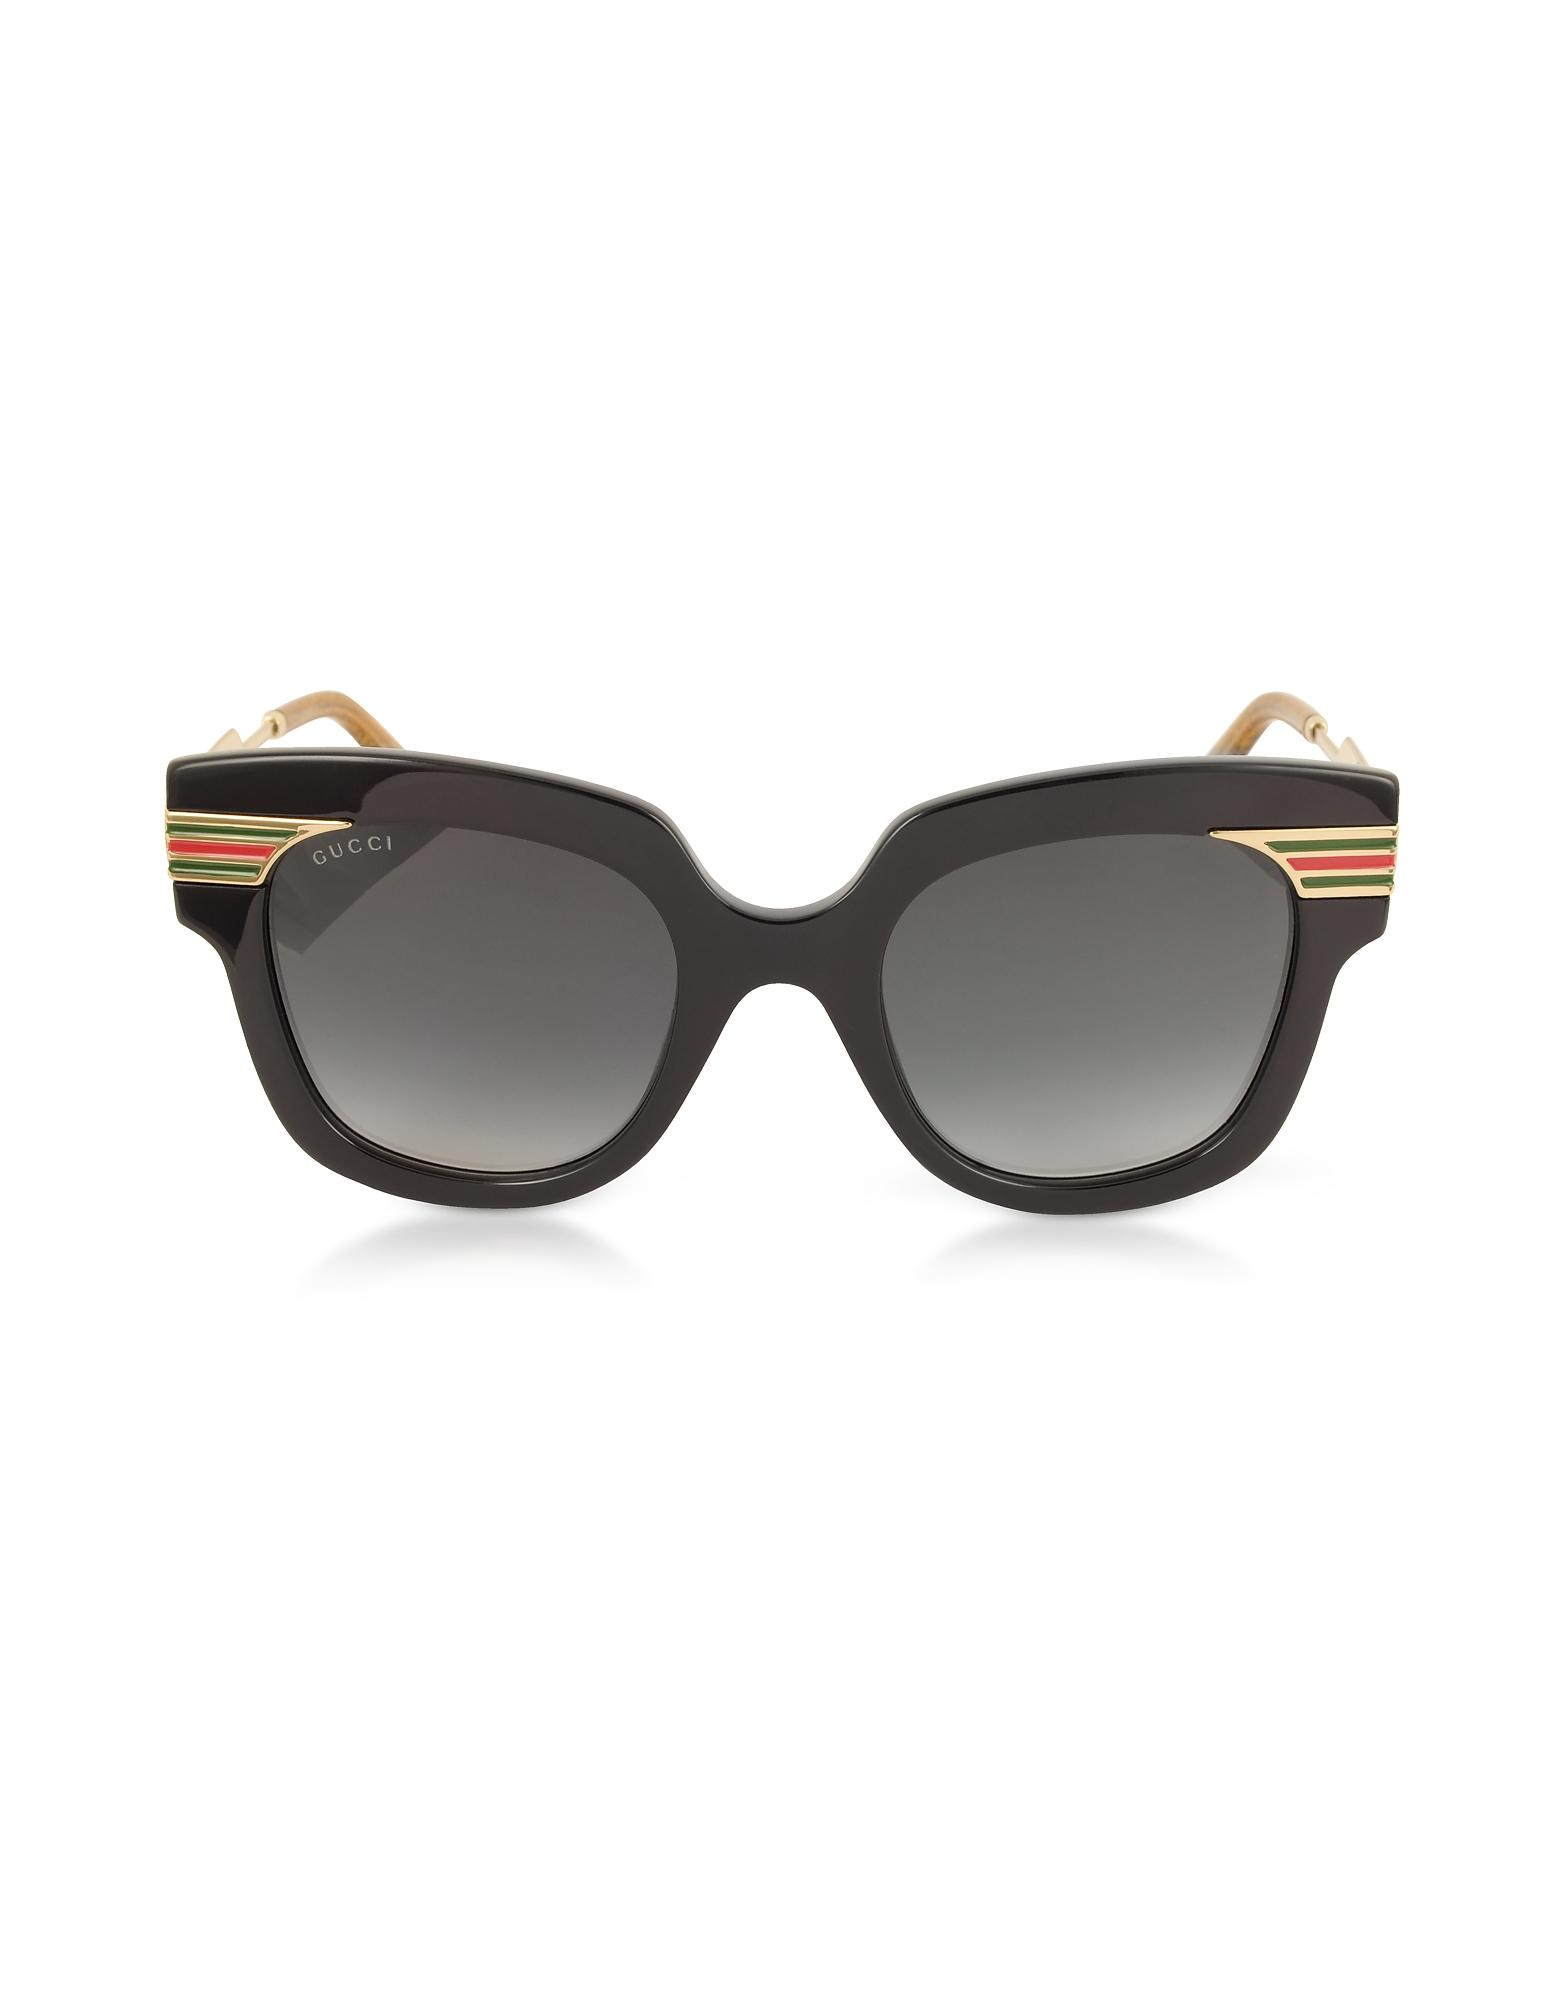 ca1819a219 Gucci - GG0281S Square-frame Black Acetate Sunglasses W sylvie Web Temples  - Lyst. View fullscreen